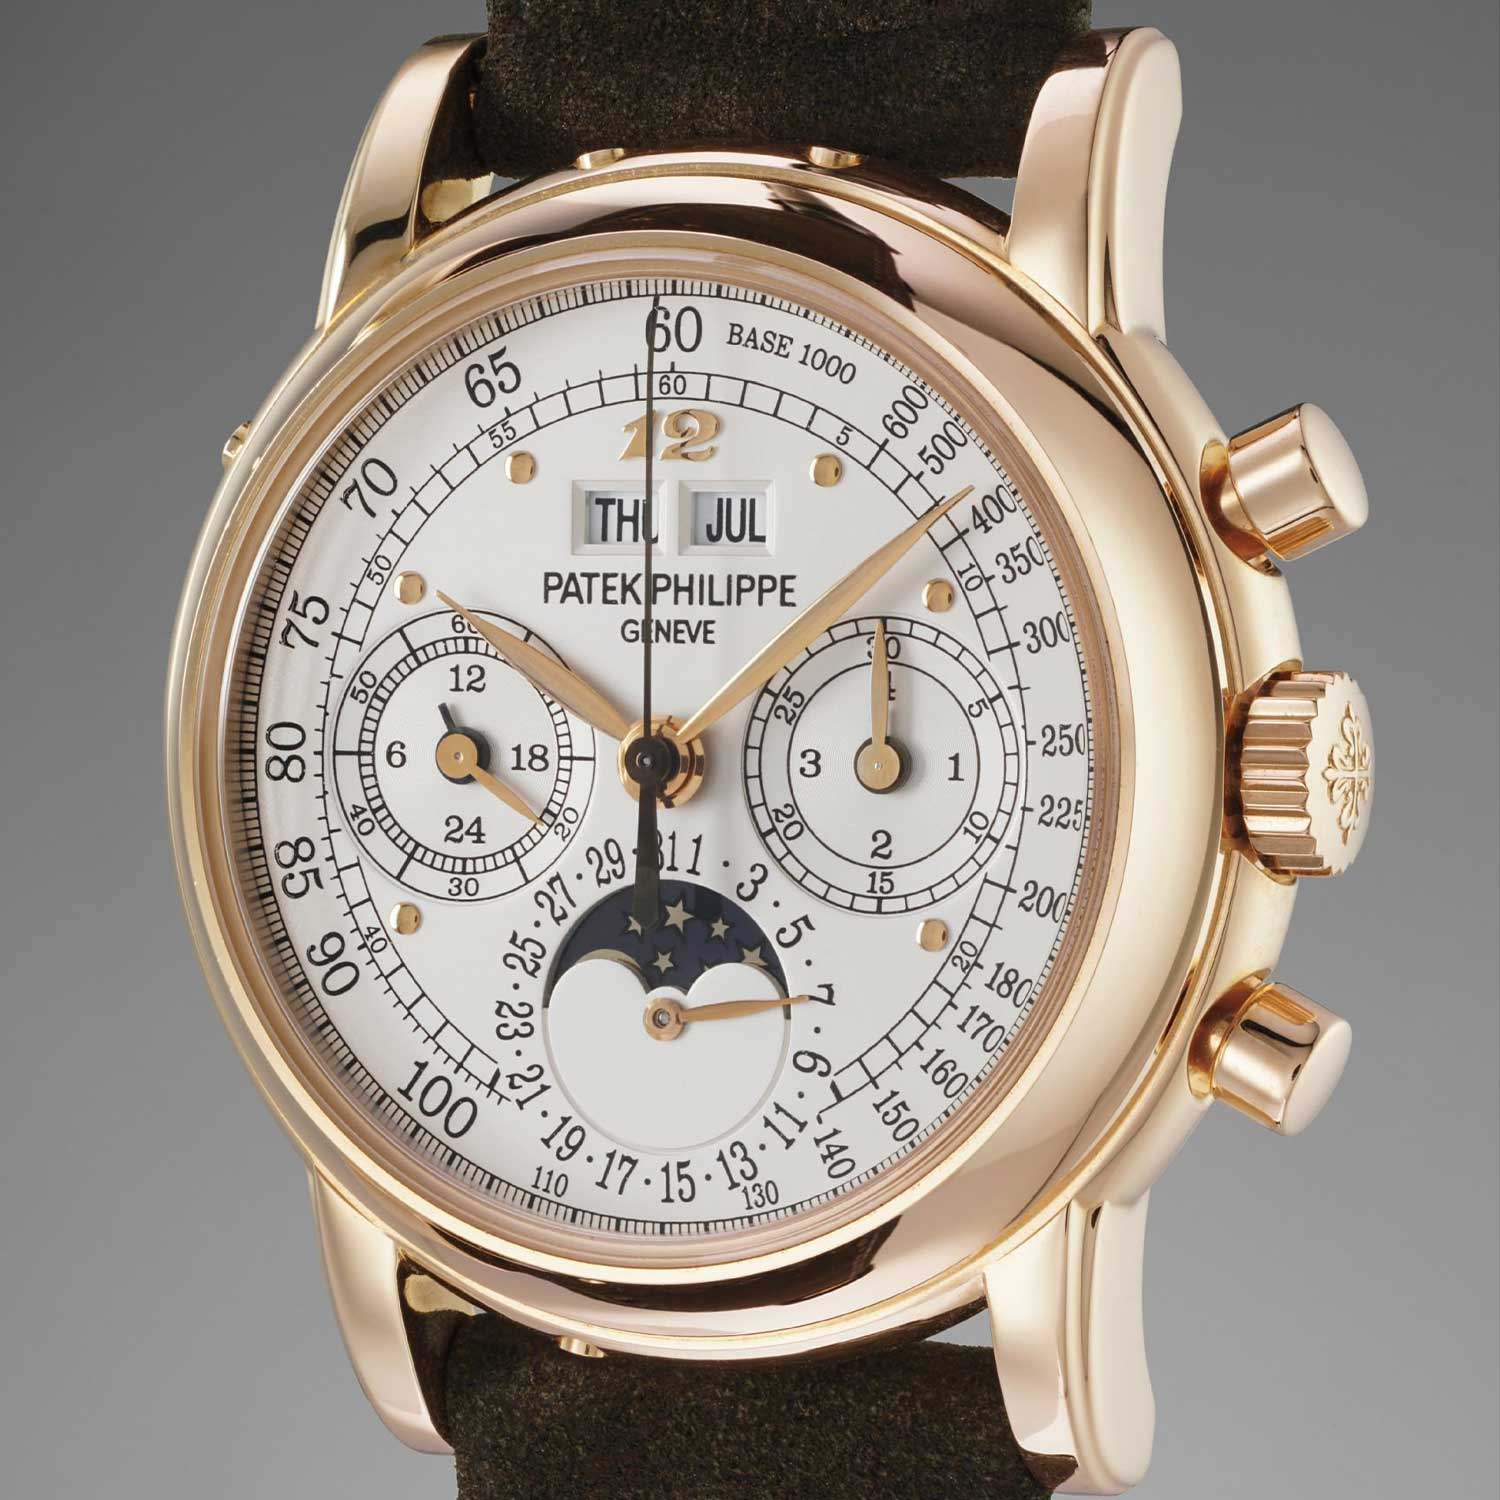 Formerly in the collection of Eric Clapton, CBE, a pink god Patek Philippe ref. 3970 erpetual calendar chronograph wristwatch with a silvered tachymeter dial and applied Breguet numeral at 12 o'clock (phillips.com)